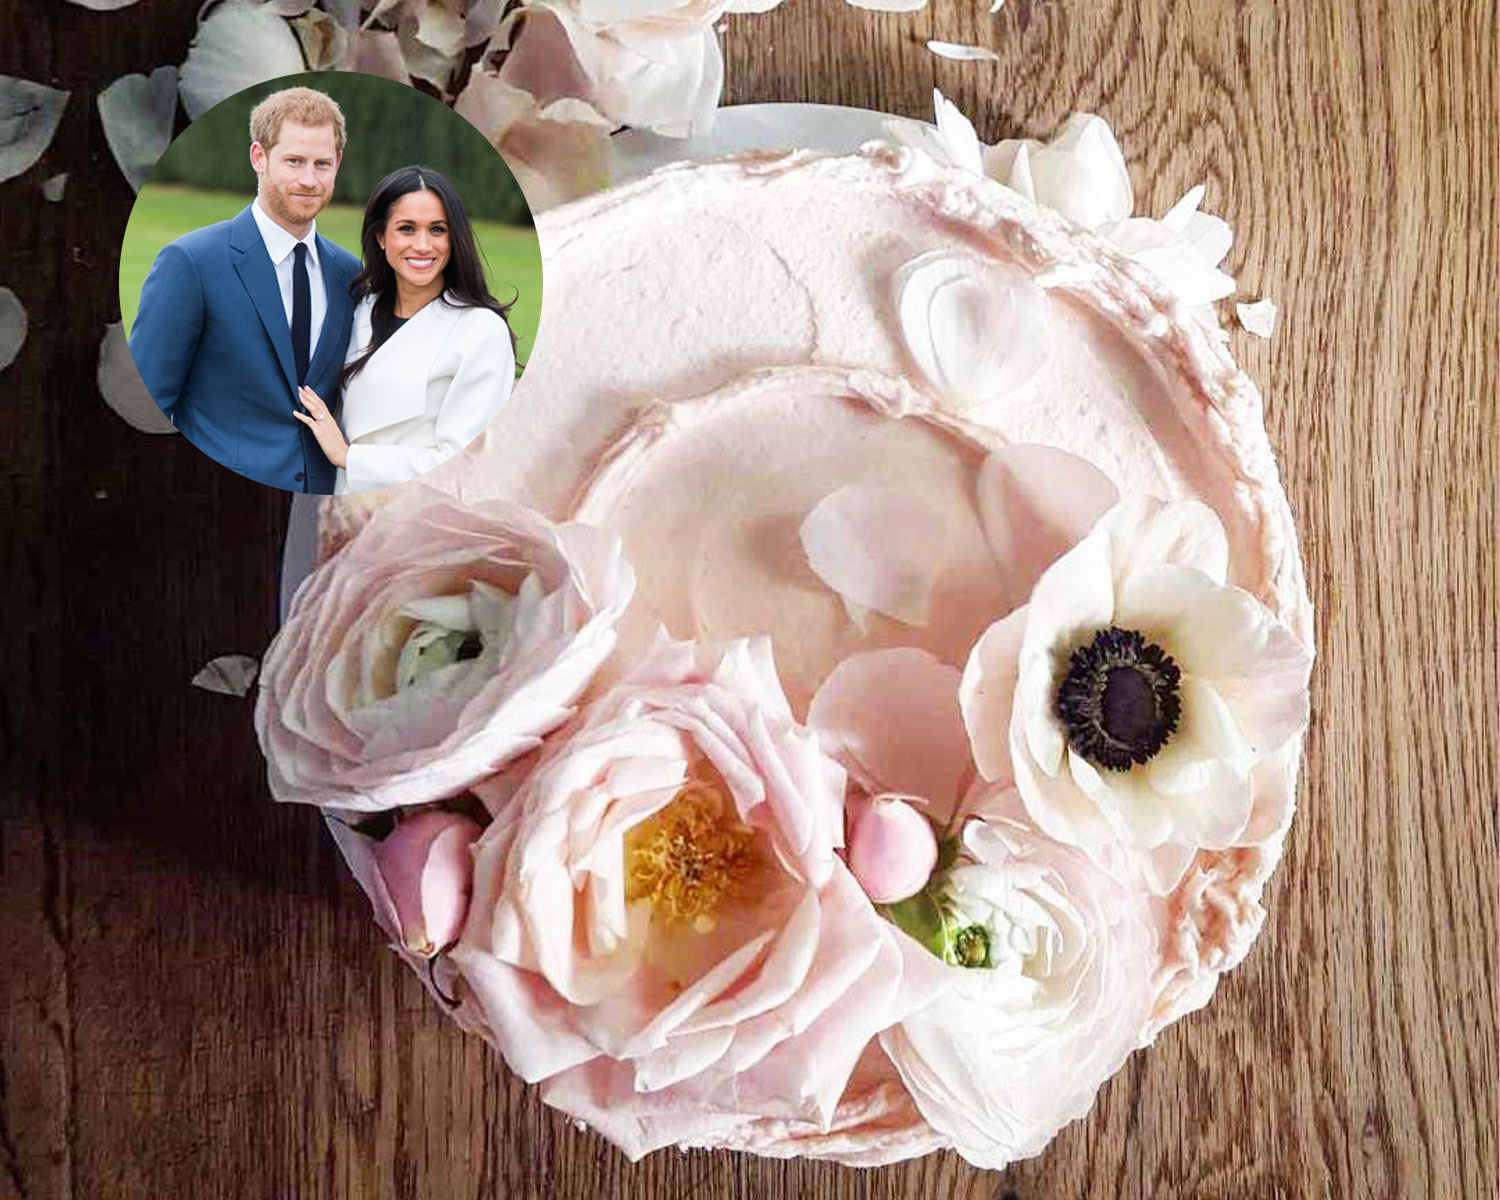 Prince Harry Meghan Markle wedding cake baker bakery photos